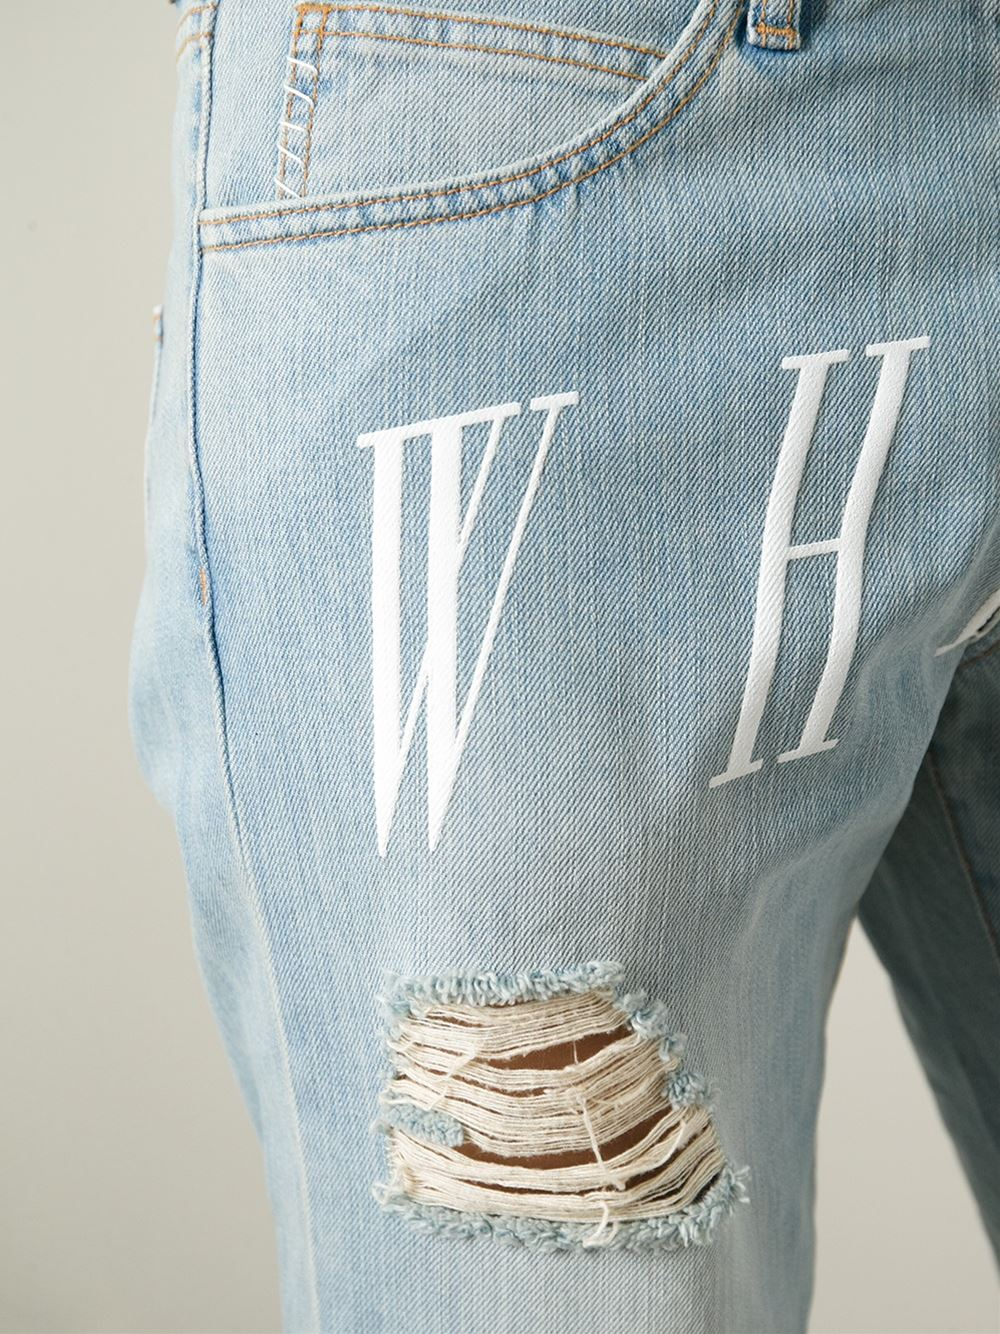 Off-White c/o Virgil Abloh Distressed Printed Jeans in Blue for Men